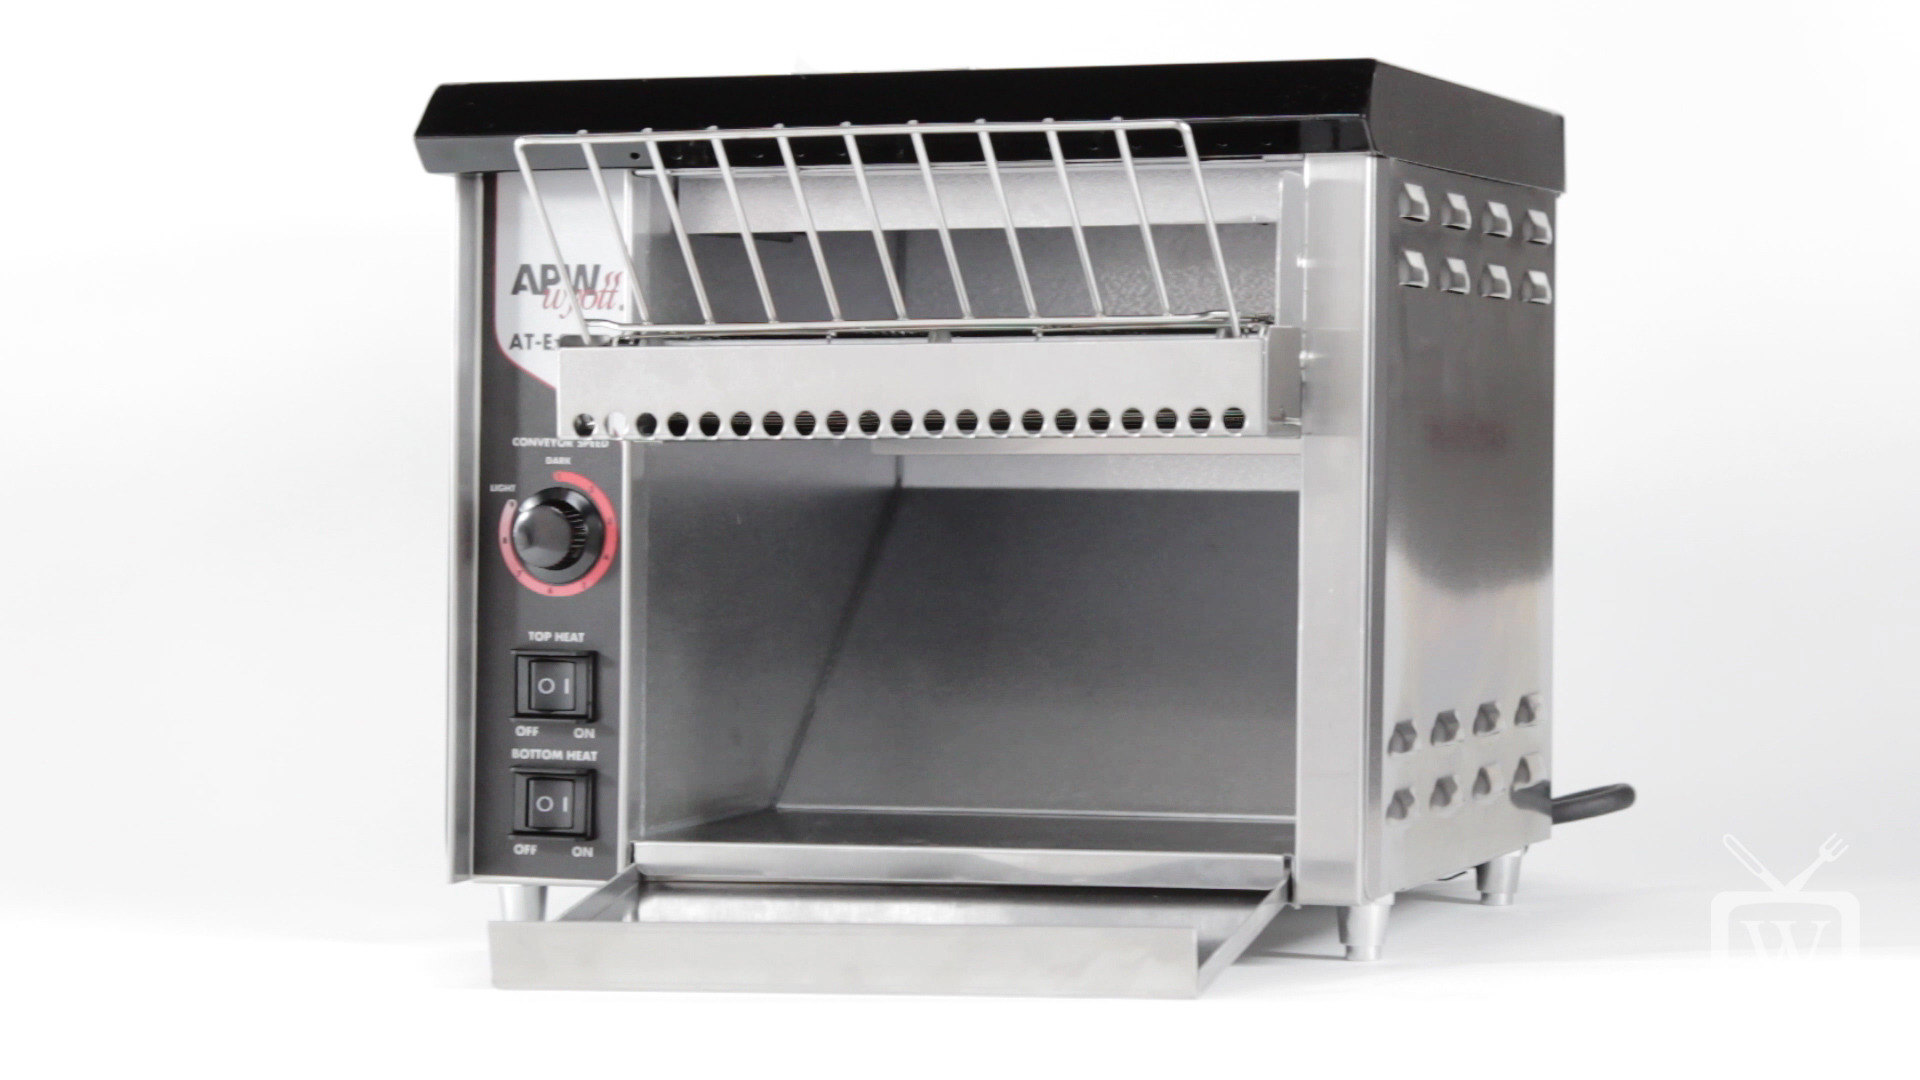 120V APW Wyott AT Express Conveyor Toaster with 1 1/2